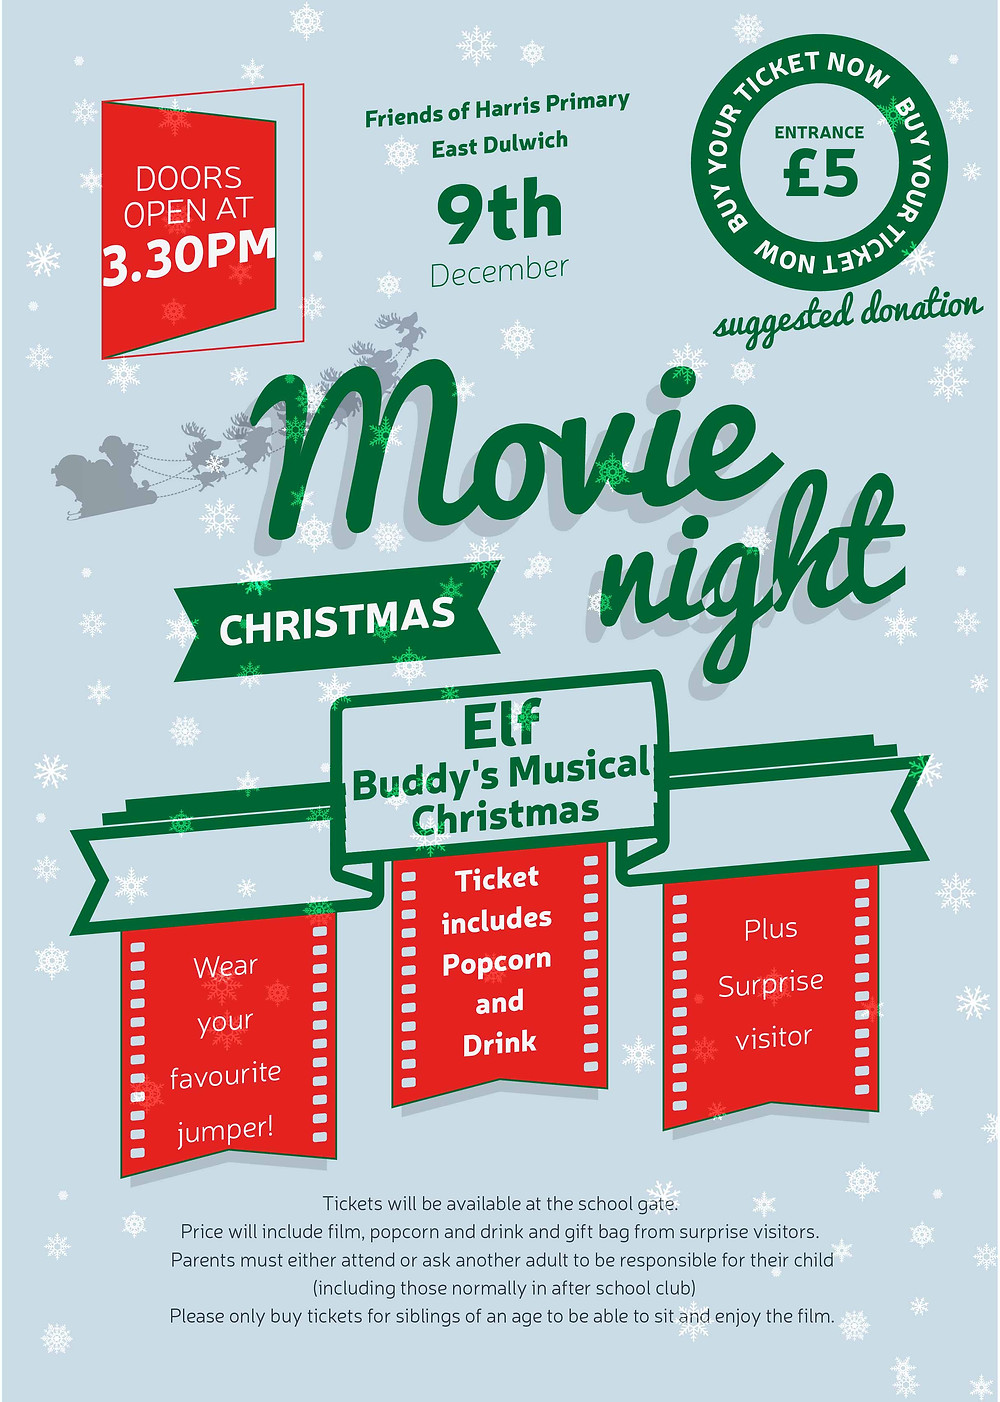 Harris Primary East Dulwich movie